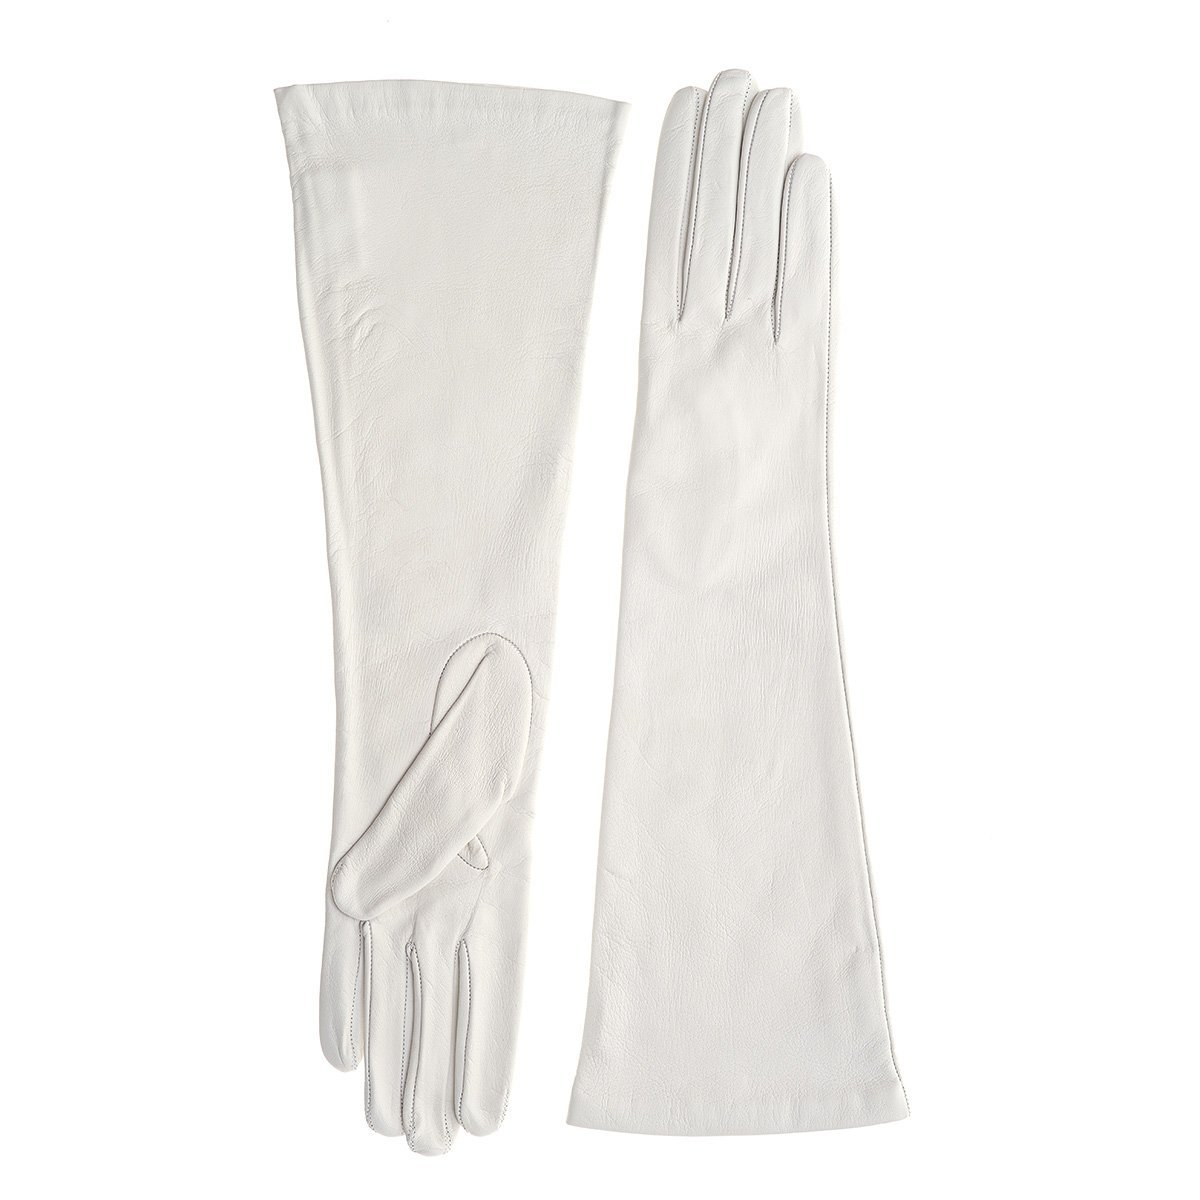 Silk Lined Long Black or White Leather Gloves (WHITE-SMALL)